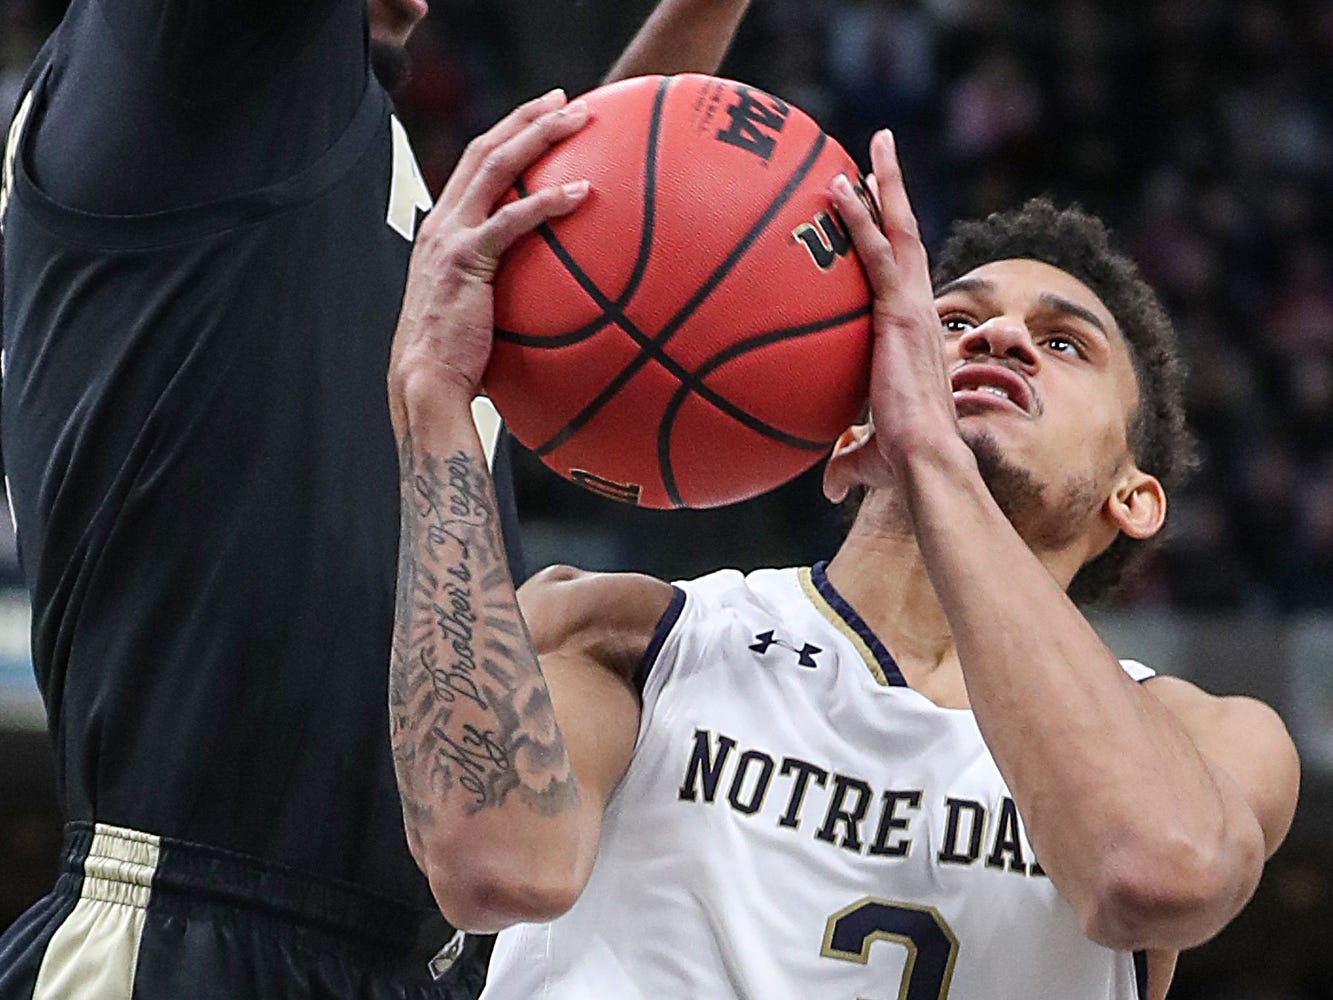 Notre Dame Fighting Irish guard Prentiss Hubb (3) goes for a layup  in the first half of the Crossroads Classic game between Purdue and Notre Dame at Banker's Life Fieldhouse in Indianapolis, Saturday, Dec. 15, 2018.